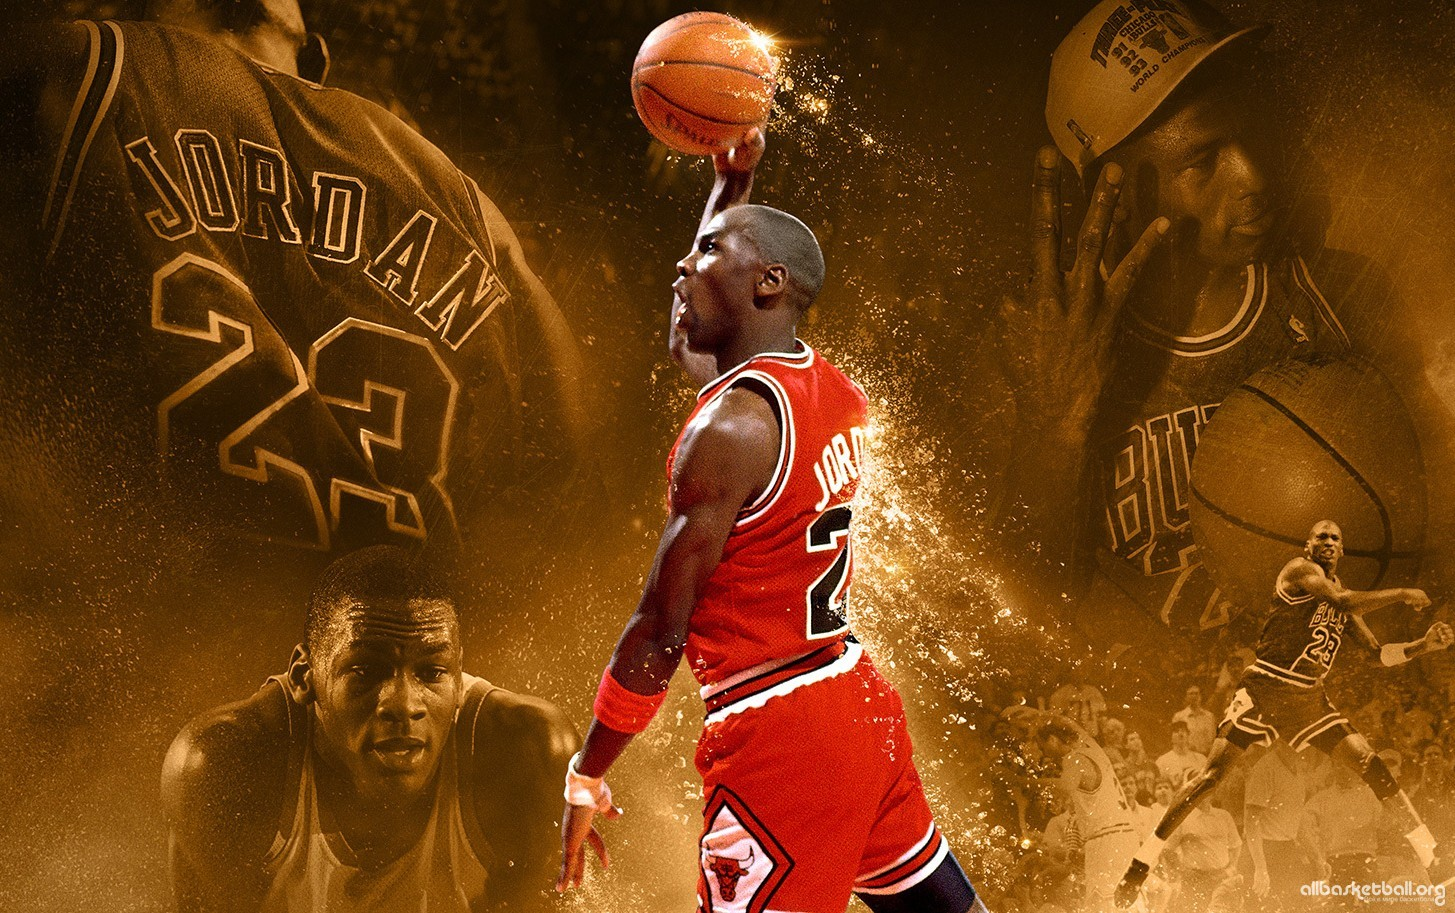 NBA 2K16 HD wallpapers free download